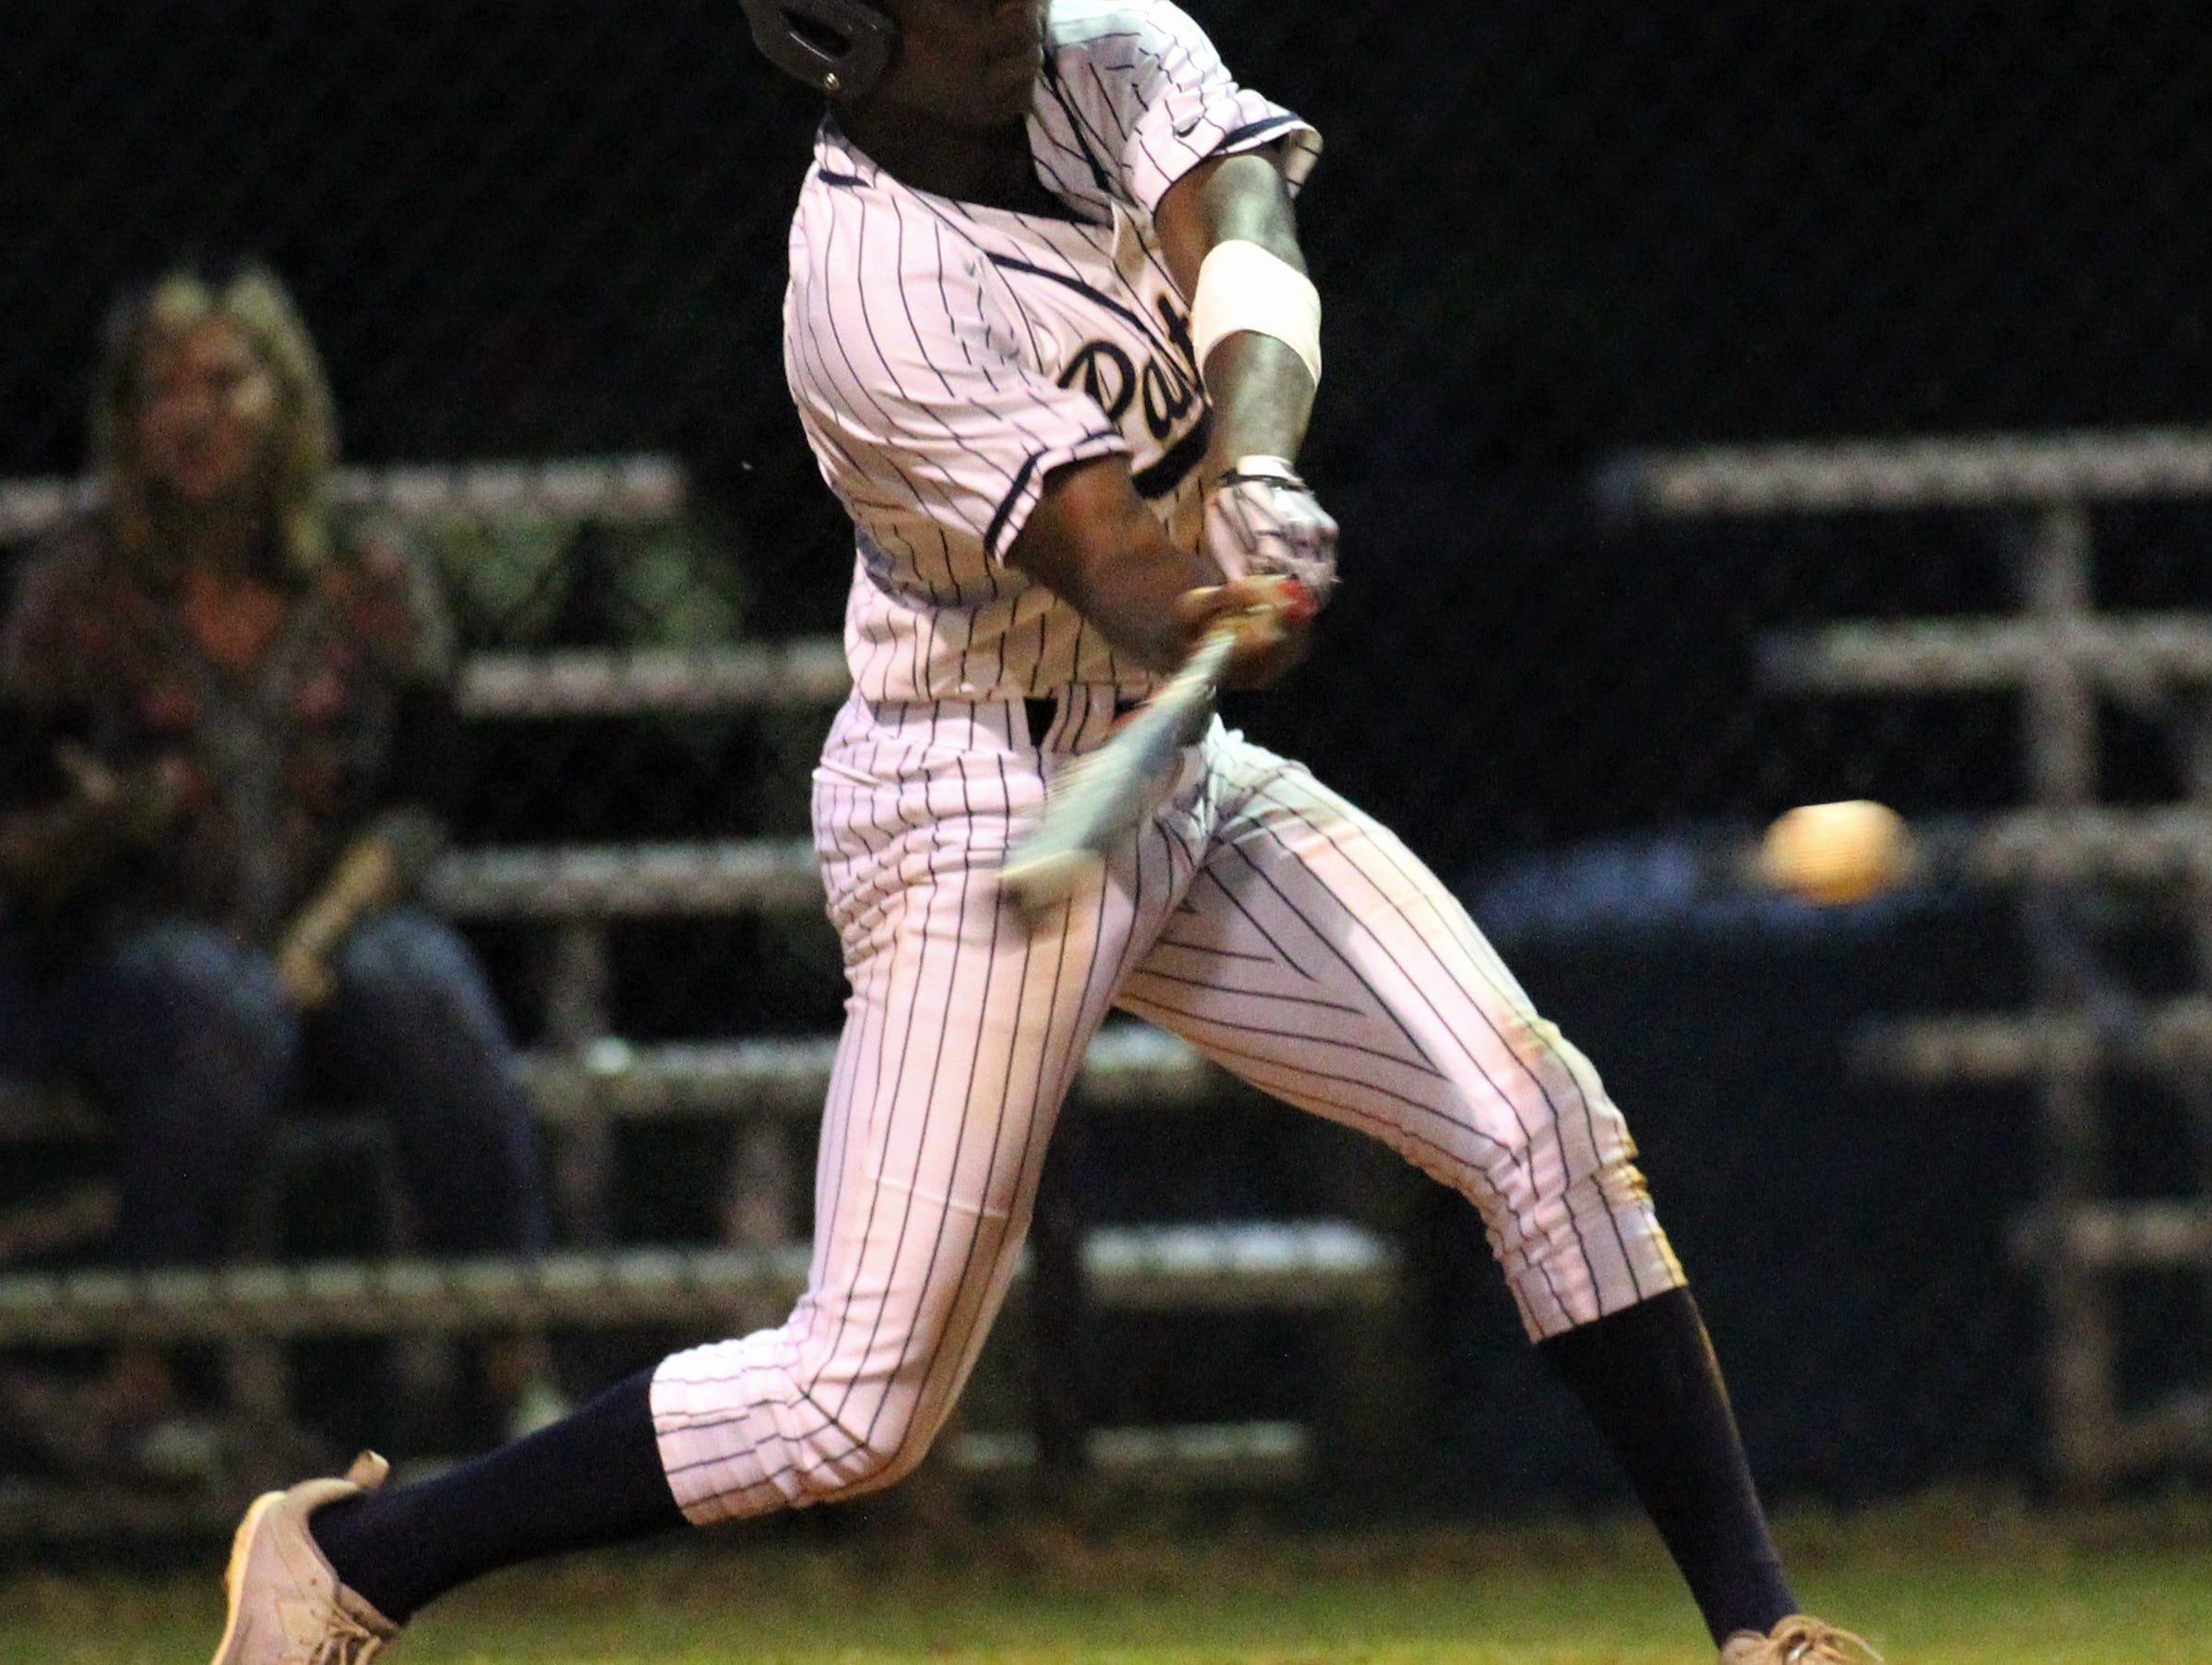 St. John Paul II junior Will Evans bats as Florida High won 11-3 on the road at St. John Paul II on Tuesday, April 3, 2010.